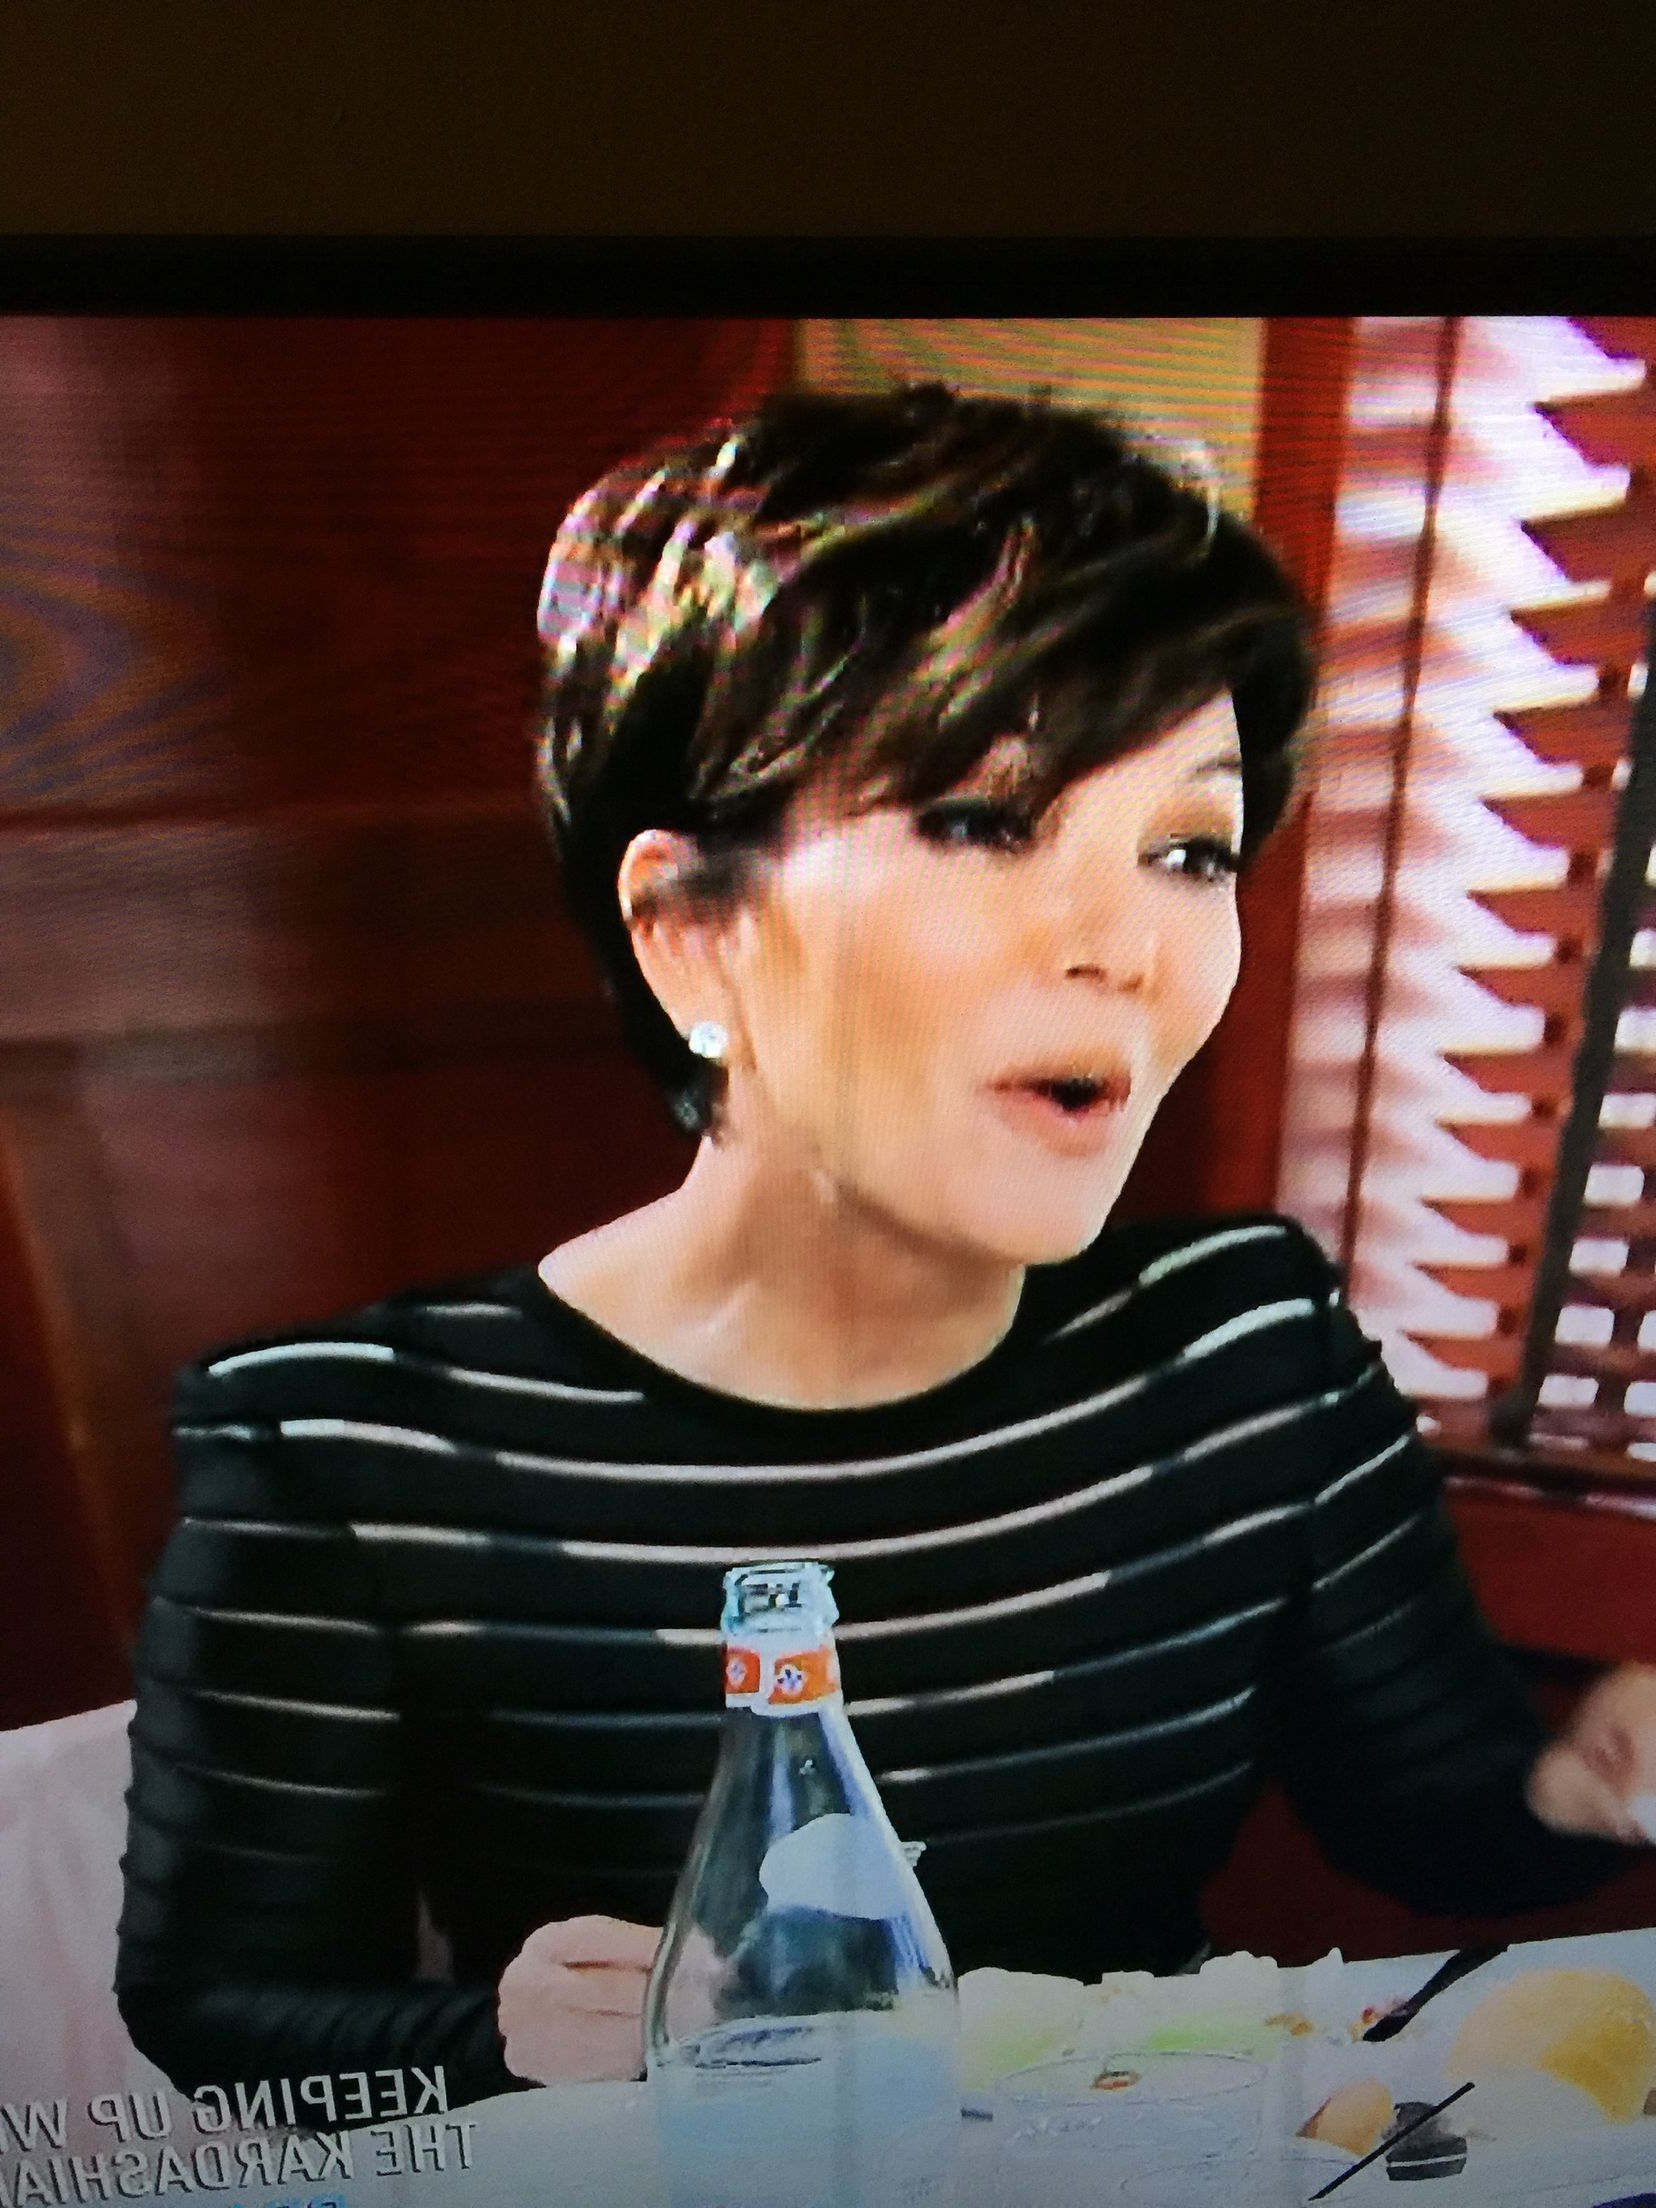 Kris Jenner | Short Haircuts I Want In 2018 | Pinterest | Short Hair Within Kris Jenner Short Haircuts (View 6 of 25)